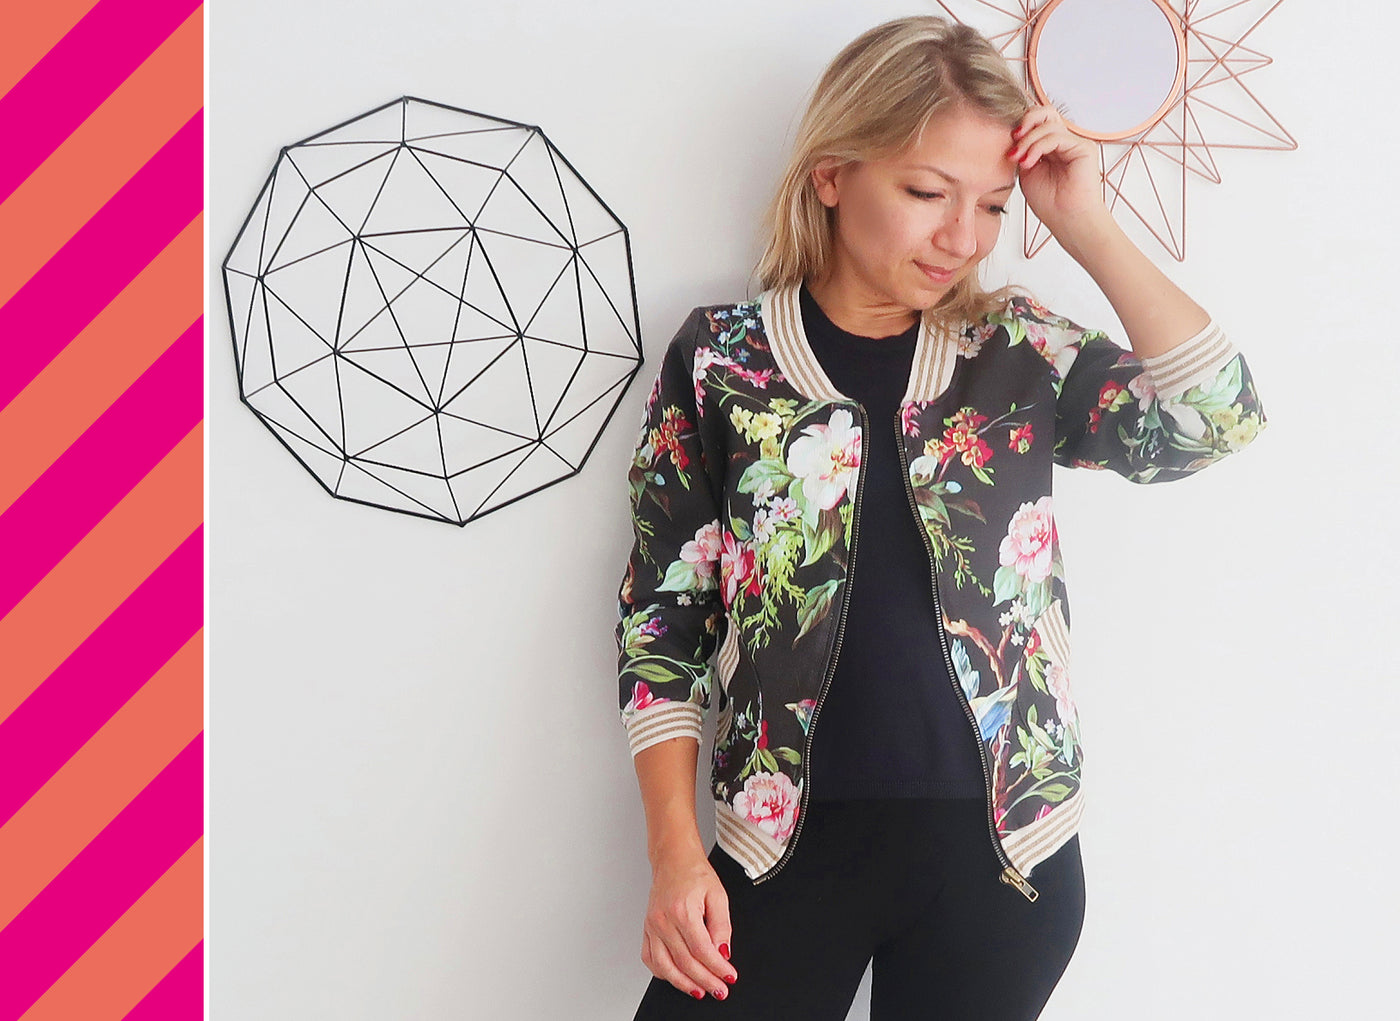 Konfetti Patterns Näh-Event lasari design jacke nähen